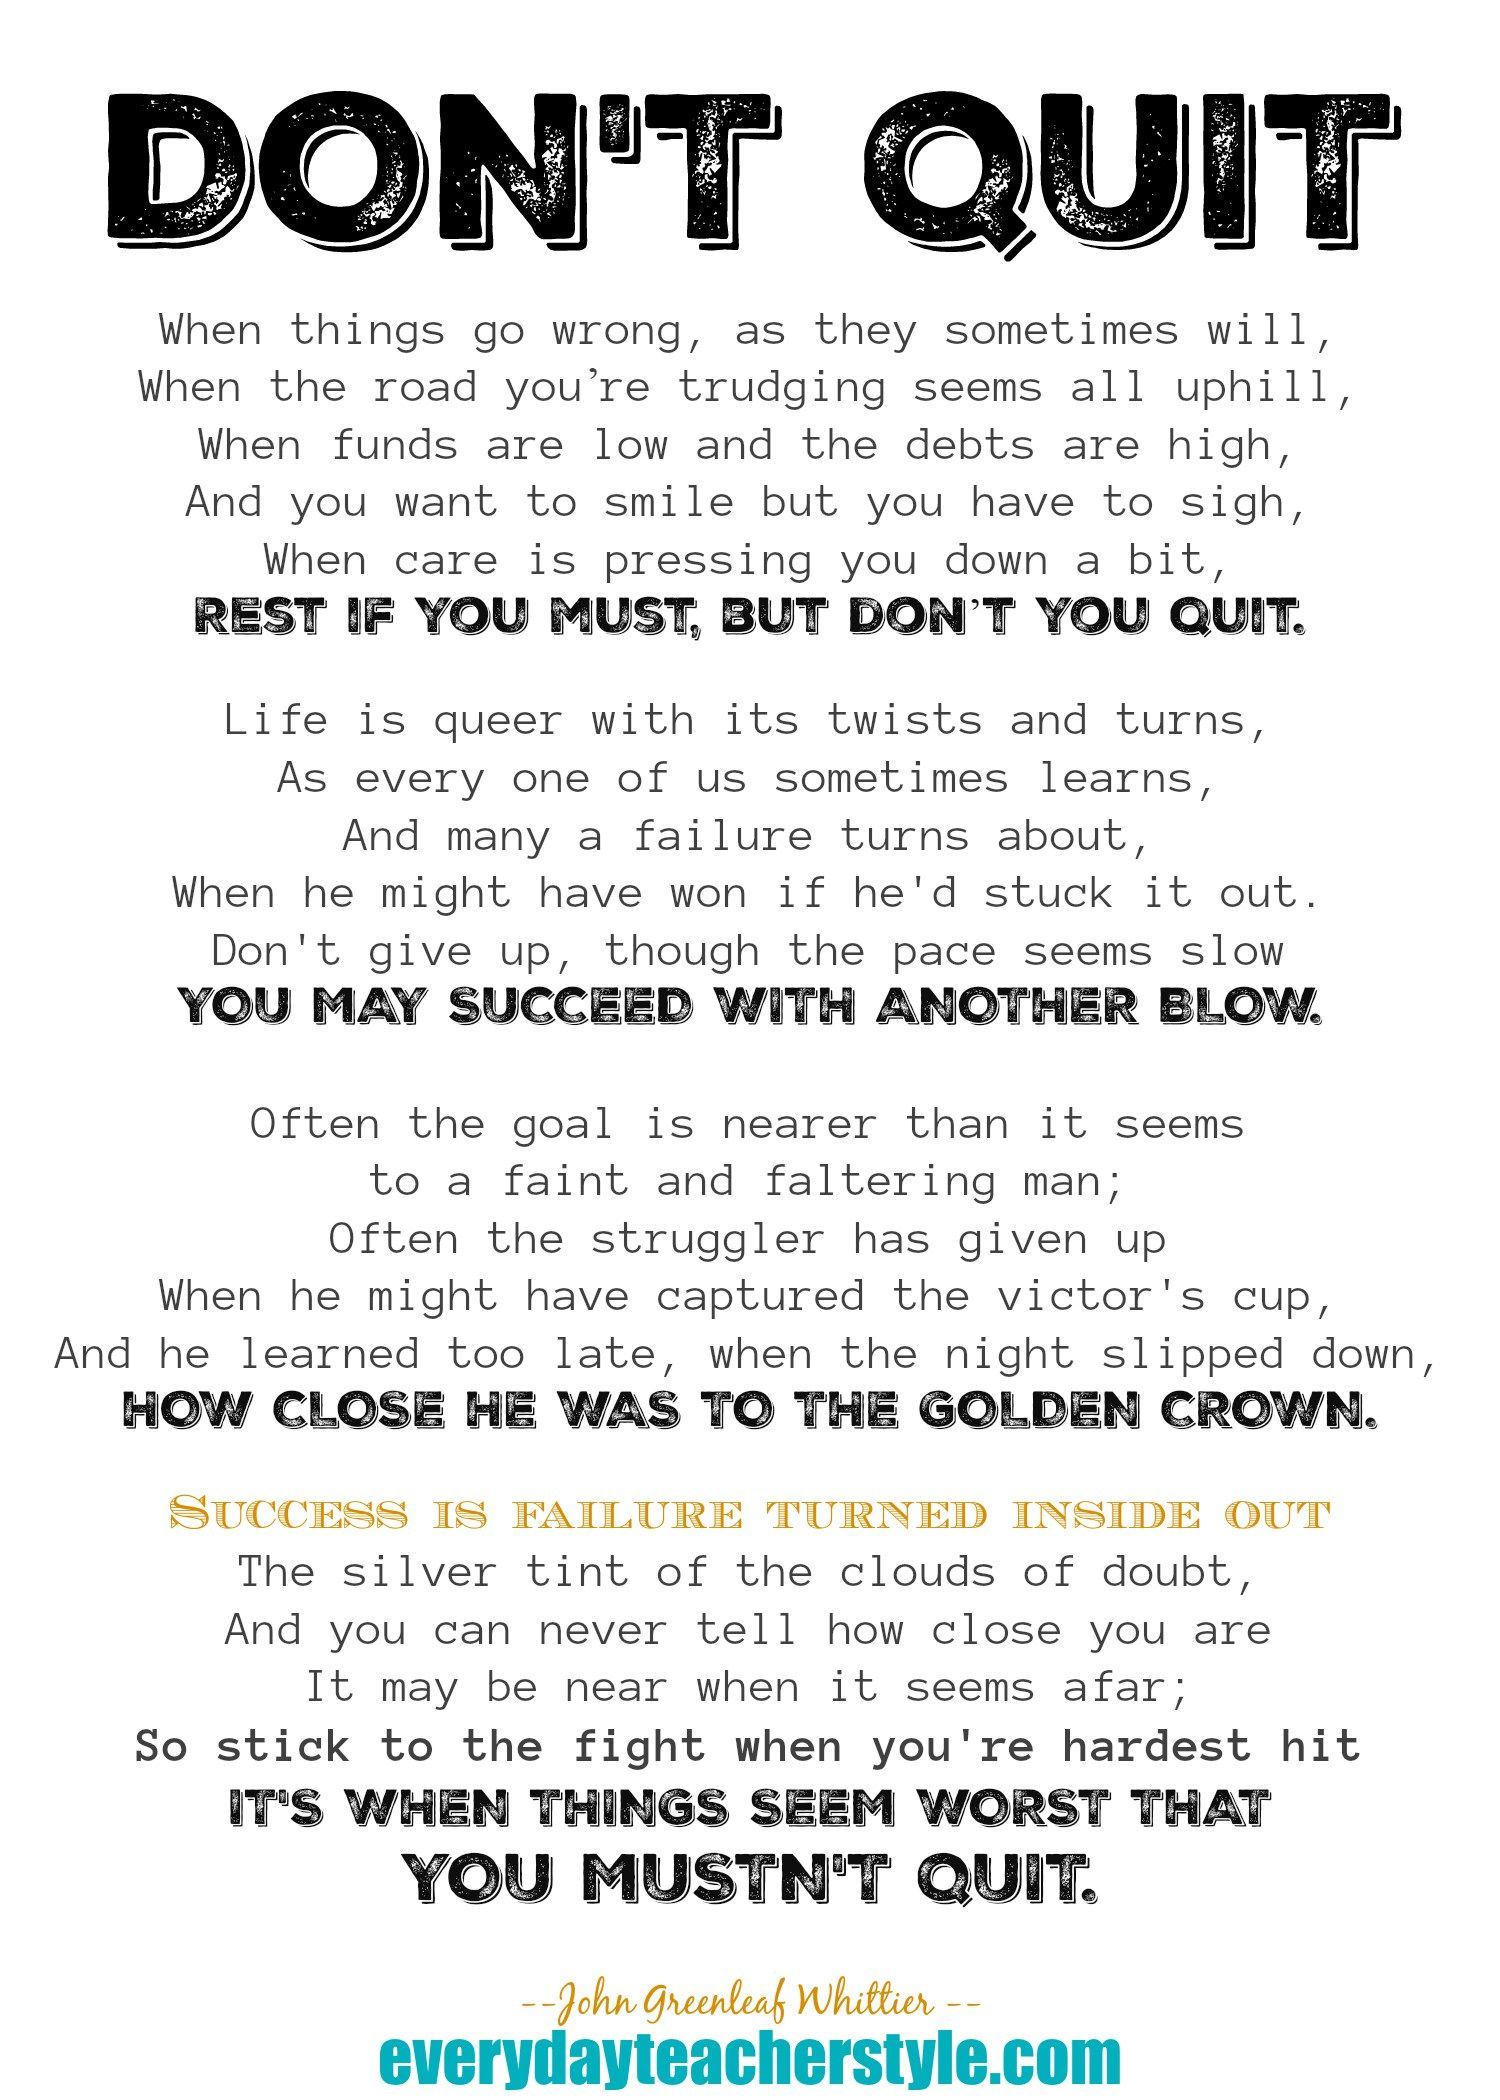 Poem About Never Giving Up